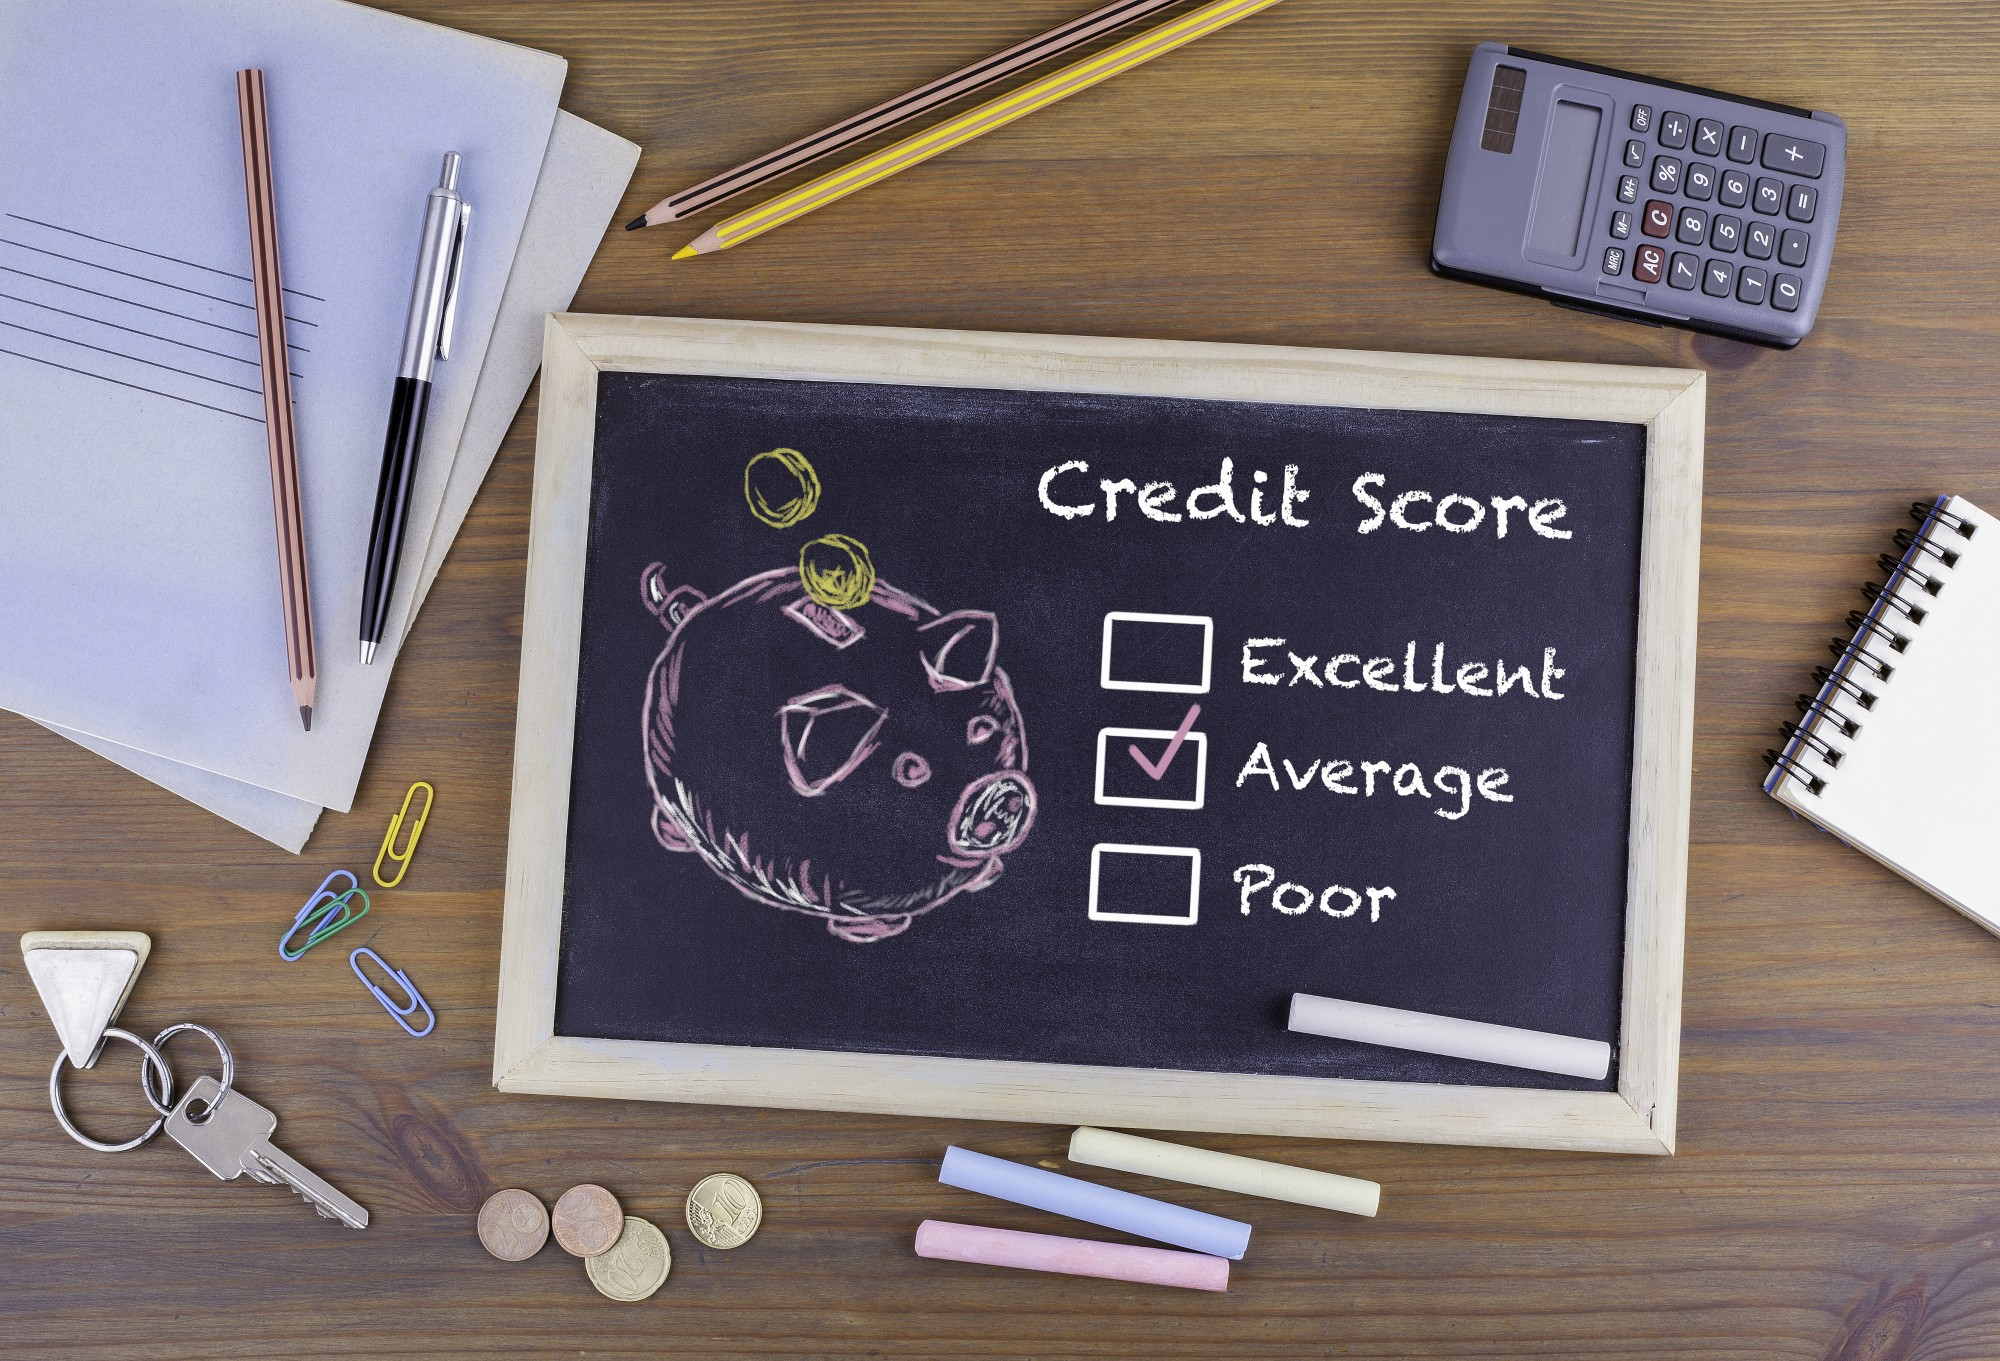 Average Credit Score concept. Chalkboard on wooden office desk